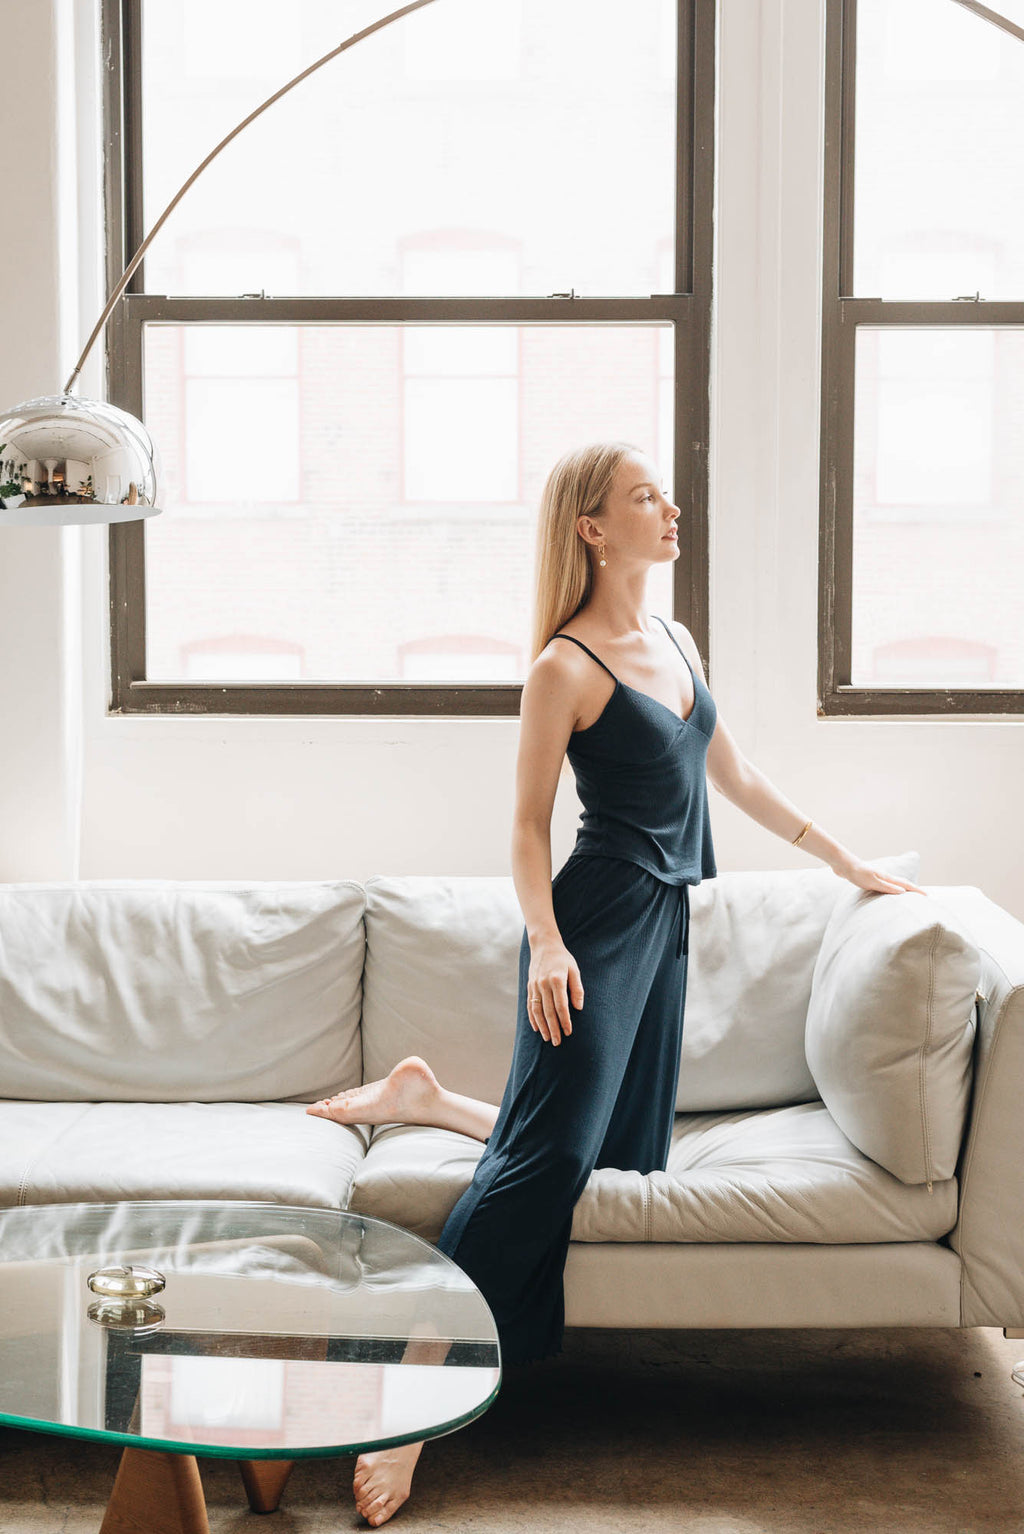 ELMNTL NYC Sustainable Fashion Sleepwear Loungewear Pajama pants